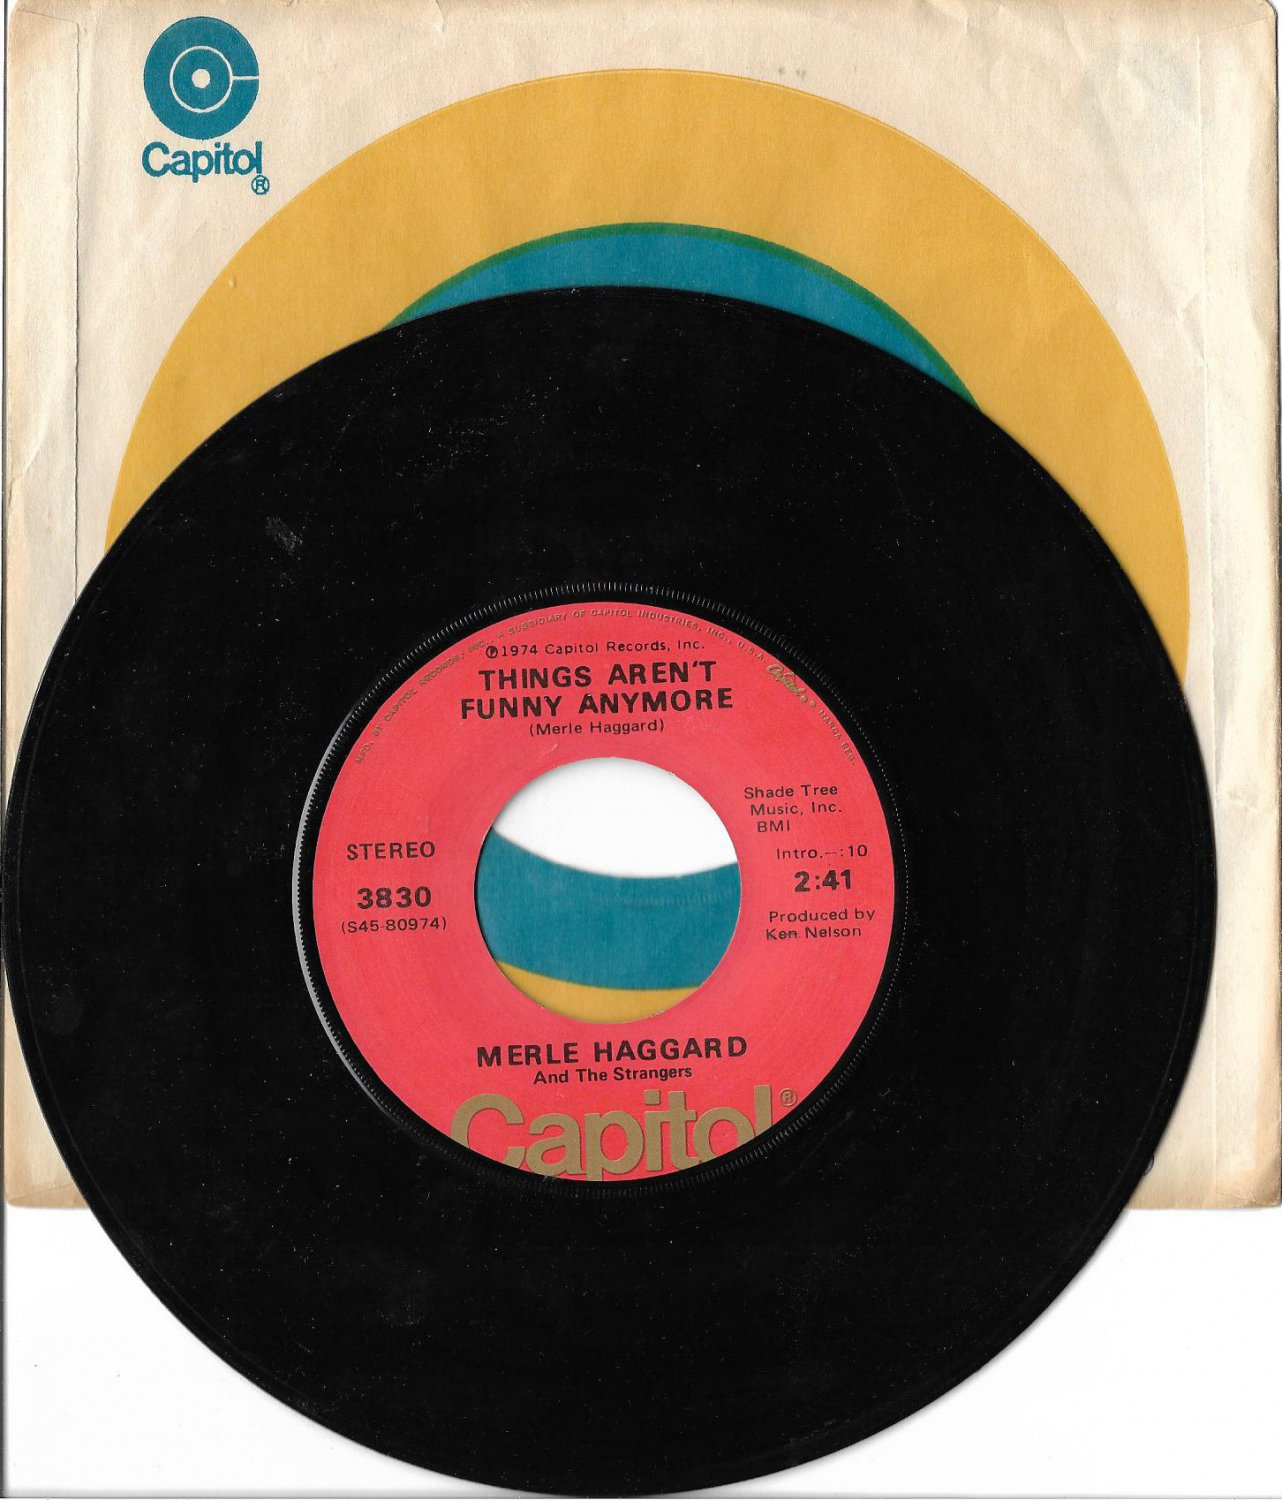 """Merle Haggard & The Strangers: """"Things Aren't Funny Anymore"""" - '74 hit - plays NM!"""